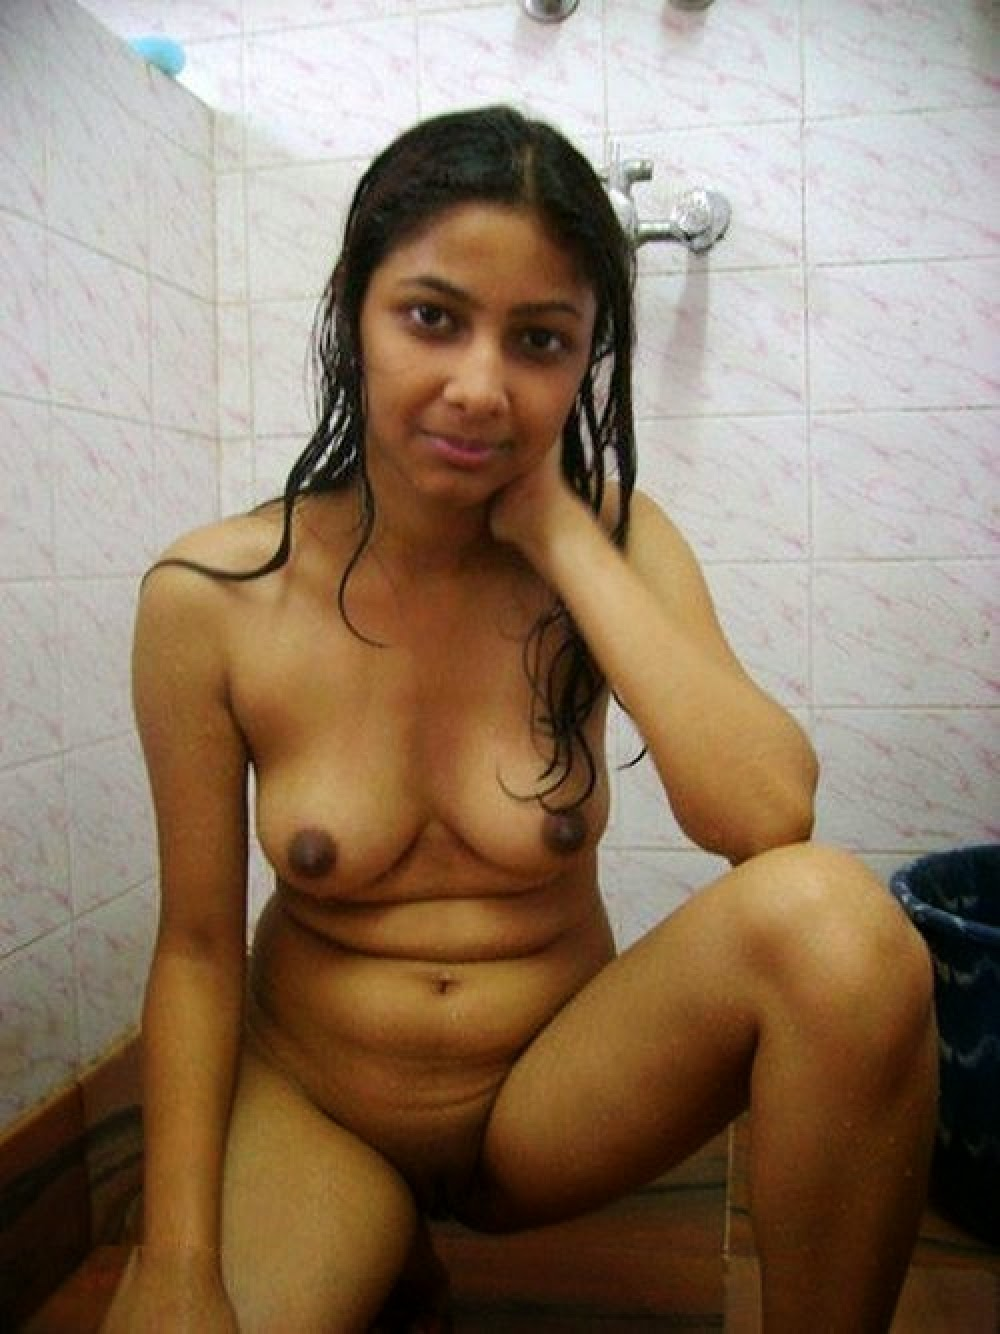 Nude Hot Amateur Indian Girls Sexy Pics-6873